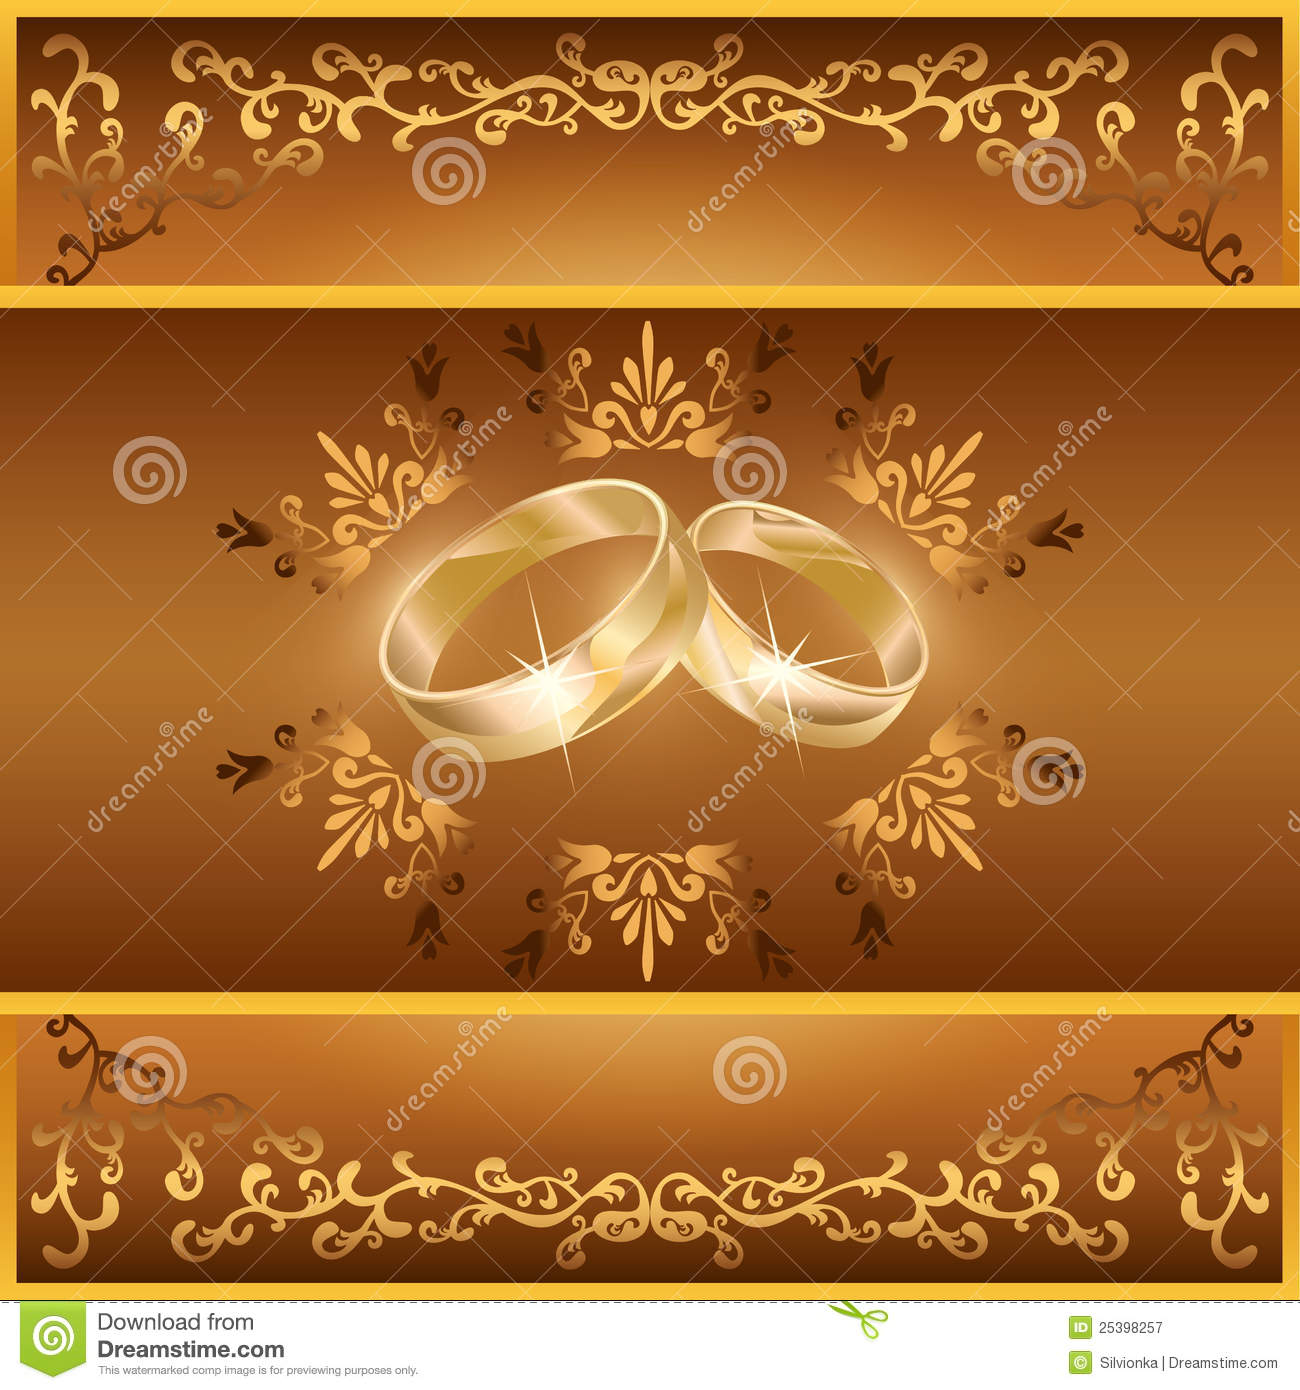 Wedding greeting or invitation card with rings stock vector wedding greeting or invitation card with rings stopboris Image collections